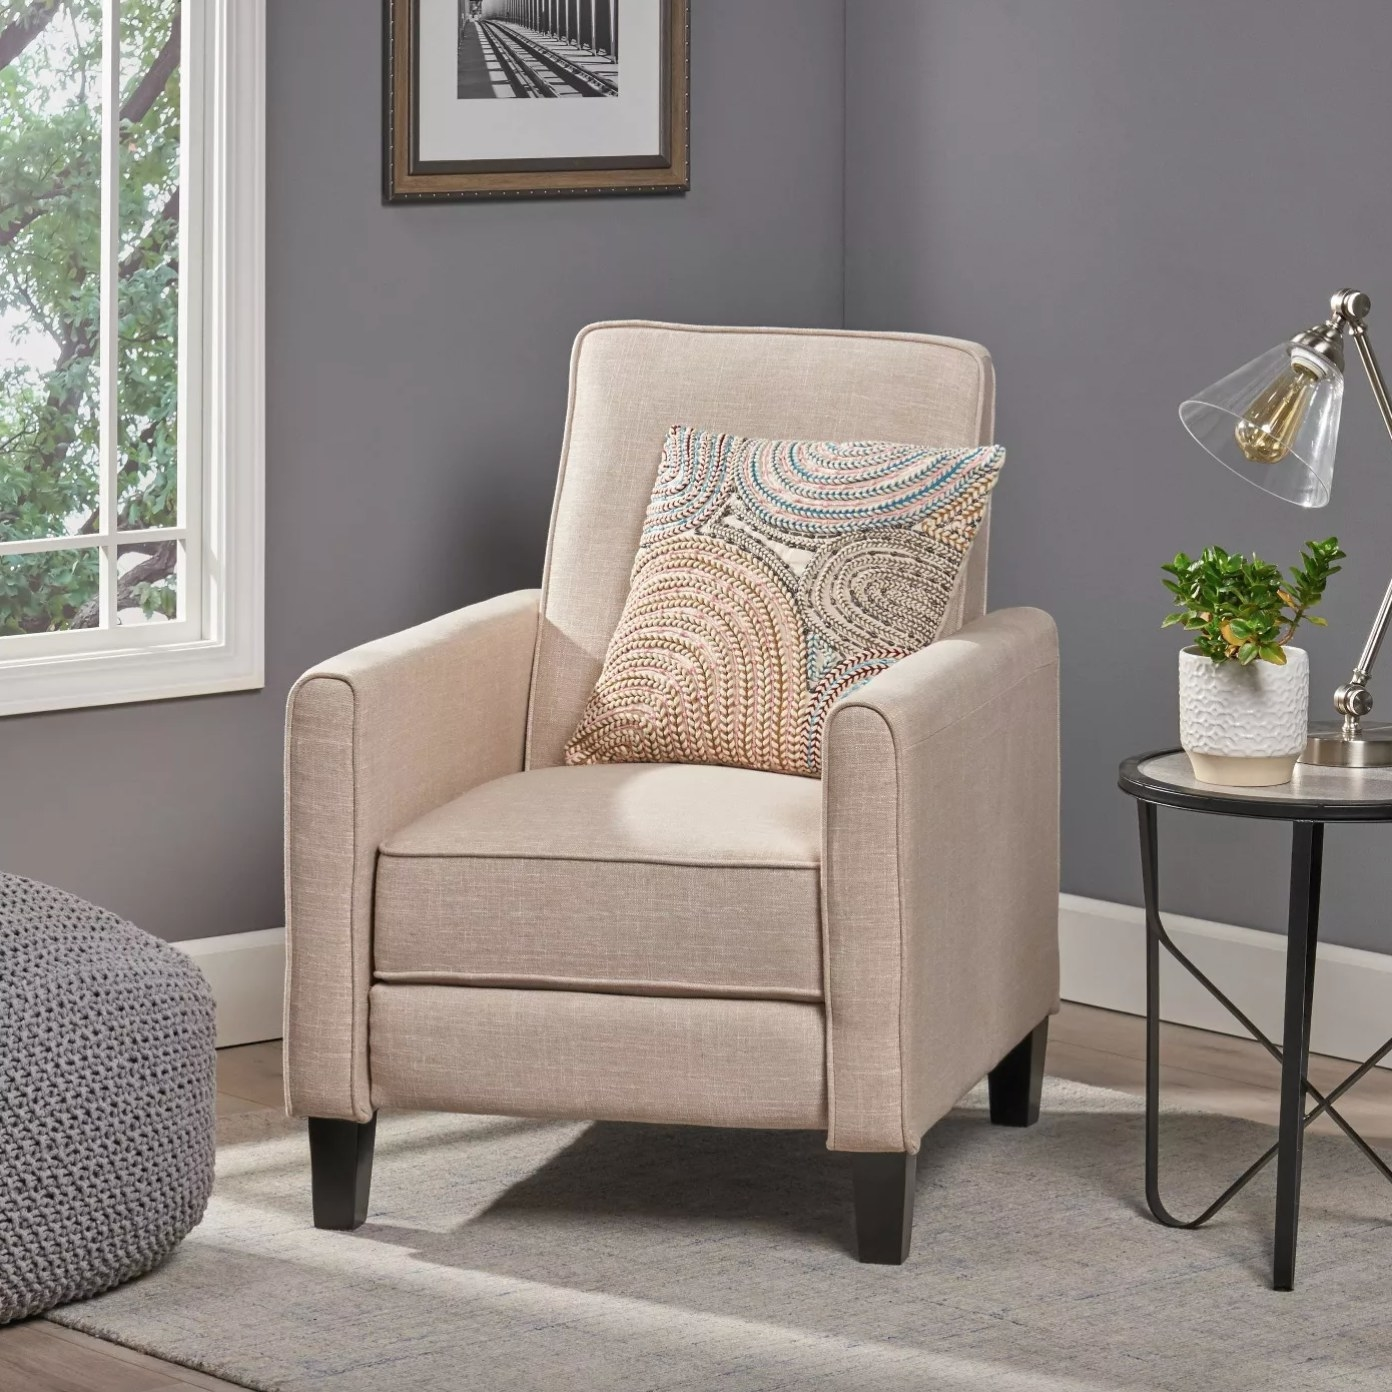 The fabric recliner club chair in beige with black legs holding a swirly patterned pillow